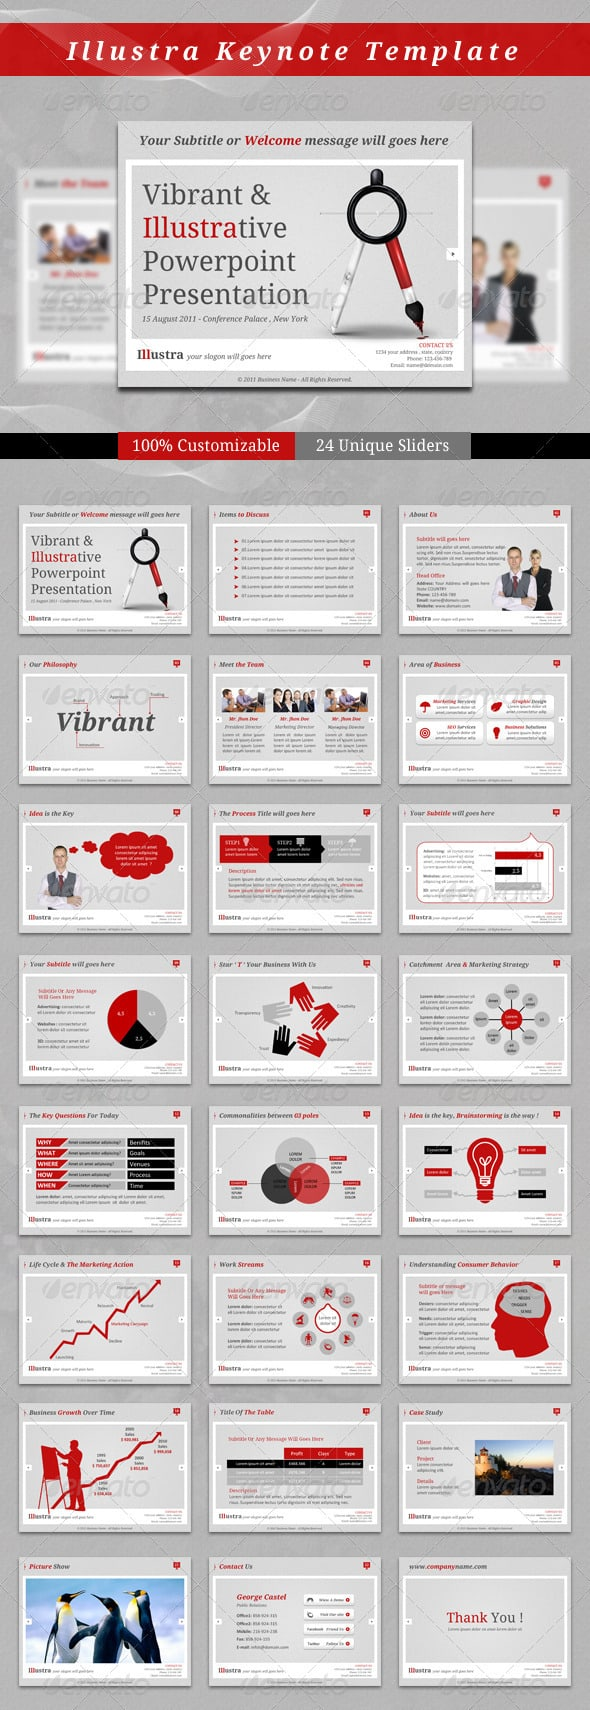 Illustra-Keynote-Template